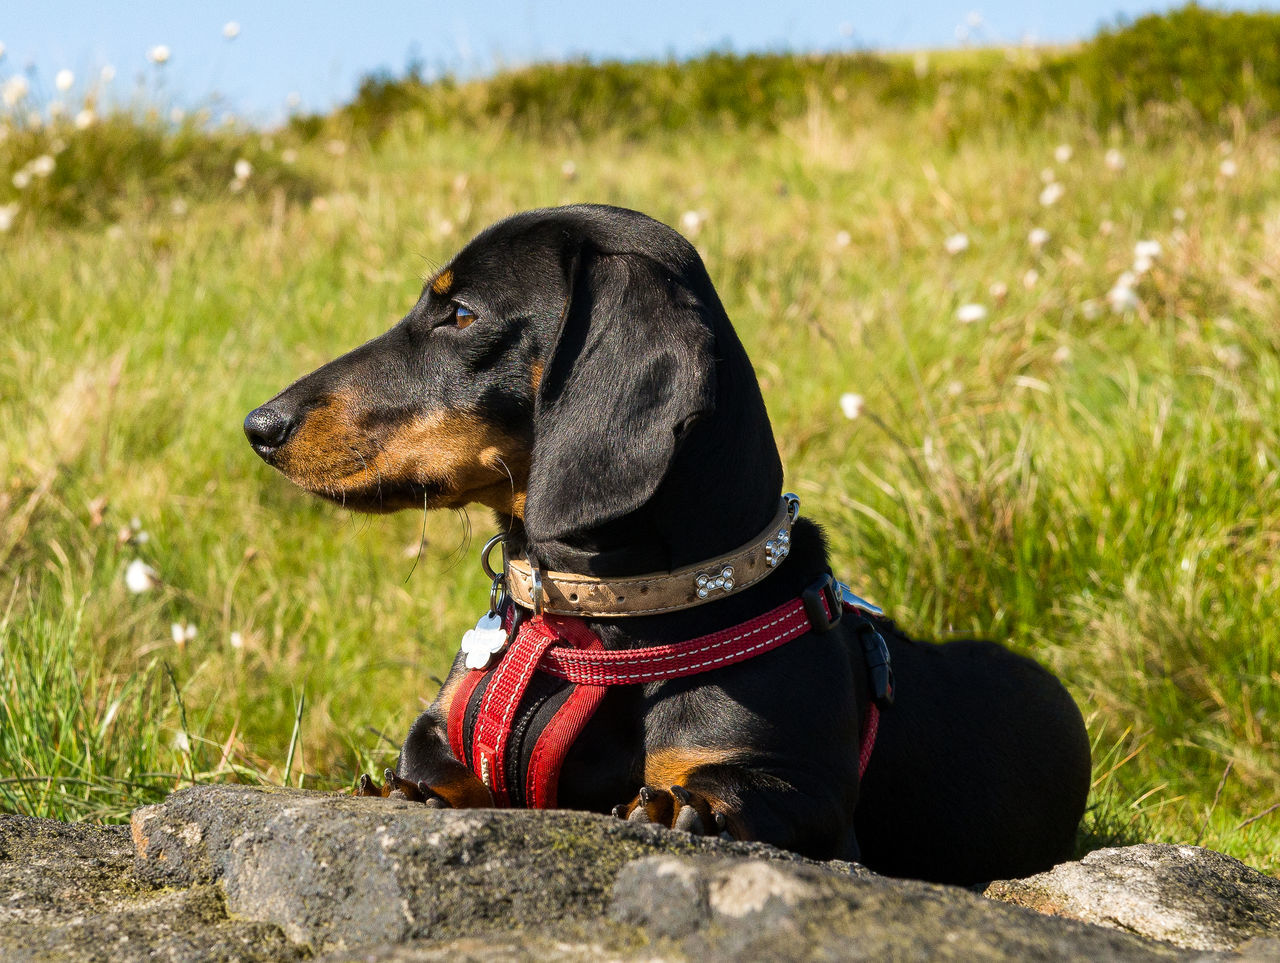 Taking in the views Animal Themes Cute Dachshund Dog Domestic Animals Focus On Foreground Grass No People One Animal Outdoors Pets Puppy Sausagedog Sitting